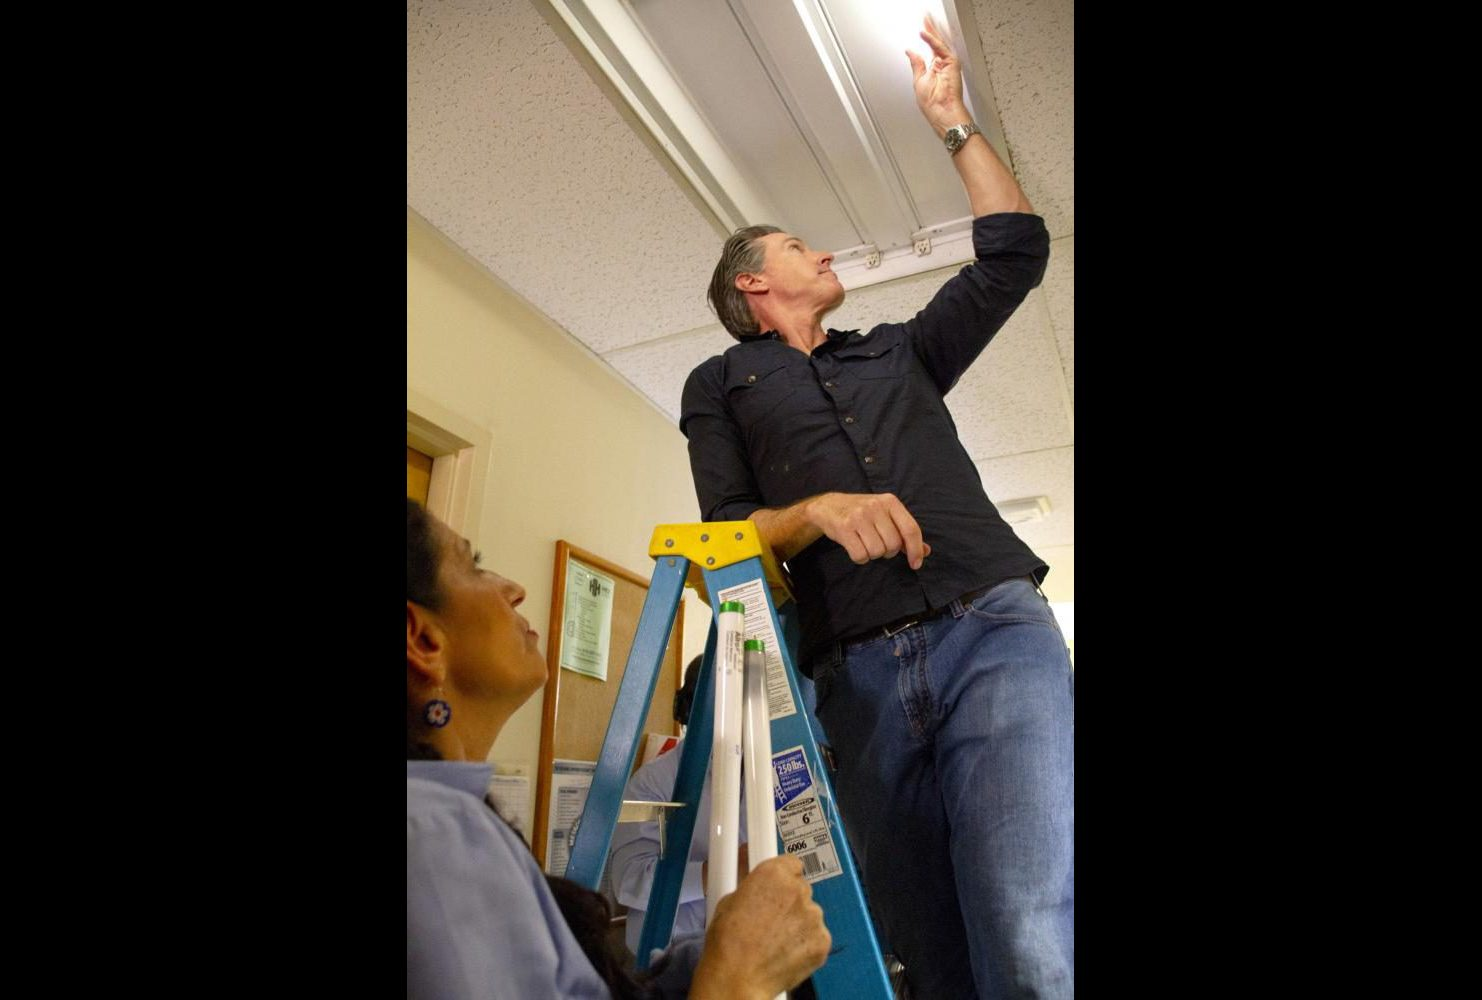 Calif. Governor Gavin Newsom replaces a florescent light bulb at American River College on the third floor of Davies Hall while shadowing custodian Maria Arambula for International Workers' Day on May 1, 2019. (Photo by Patrick Hyun Wilson)